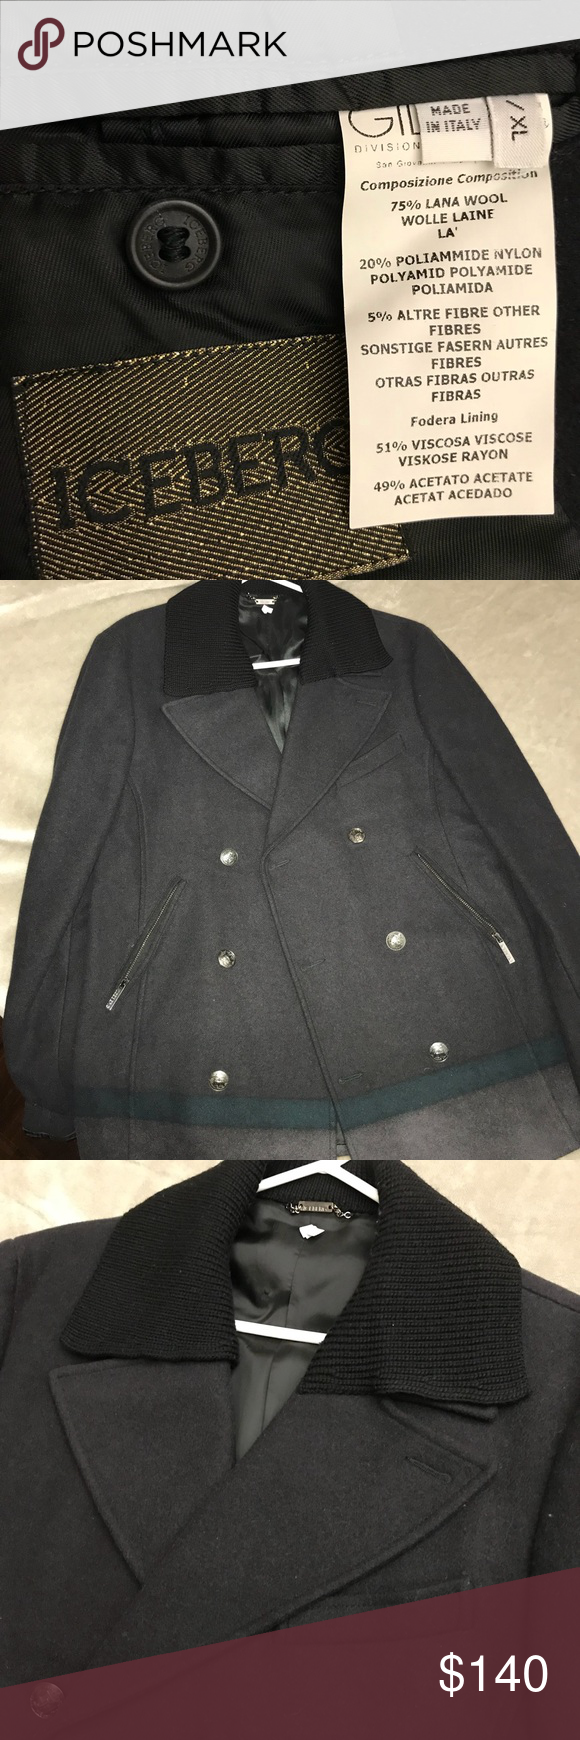 Iceberg Wool Navy Pea Coat Size 52 Us M L Fitted Navy Pea Coat Peacoat Clothes Design [ 1740 x 580 Pixel ]